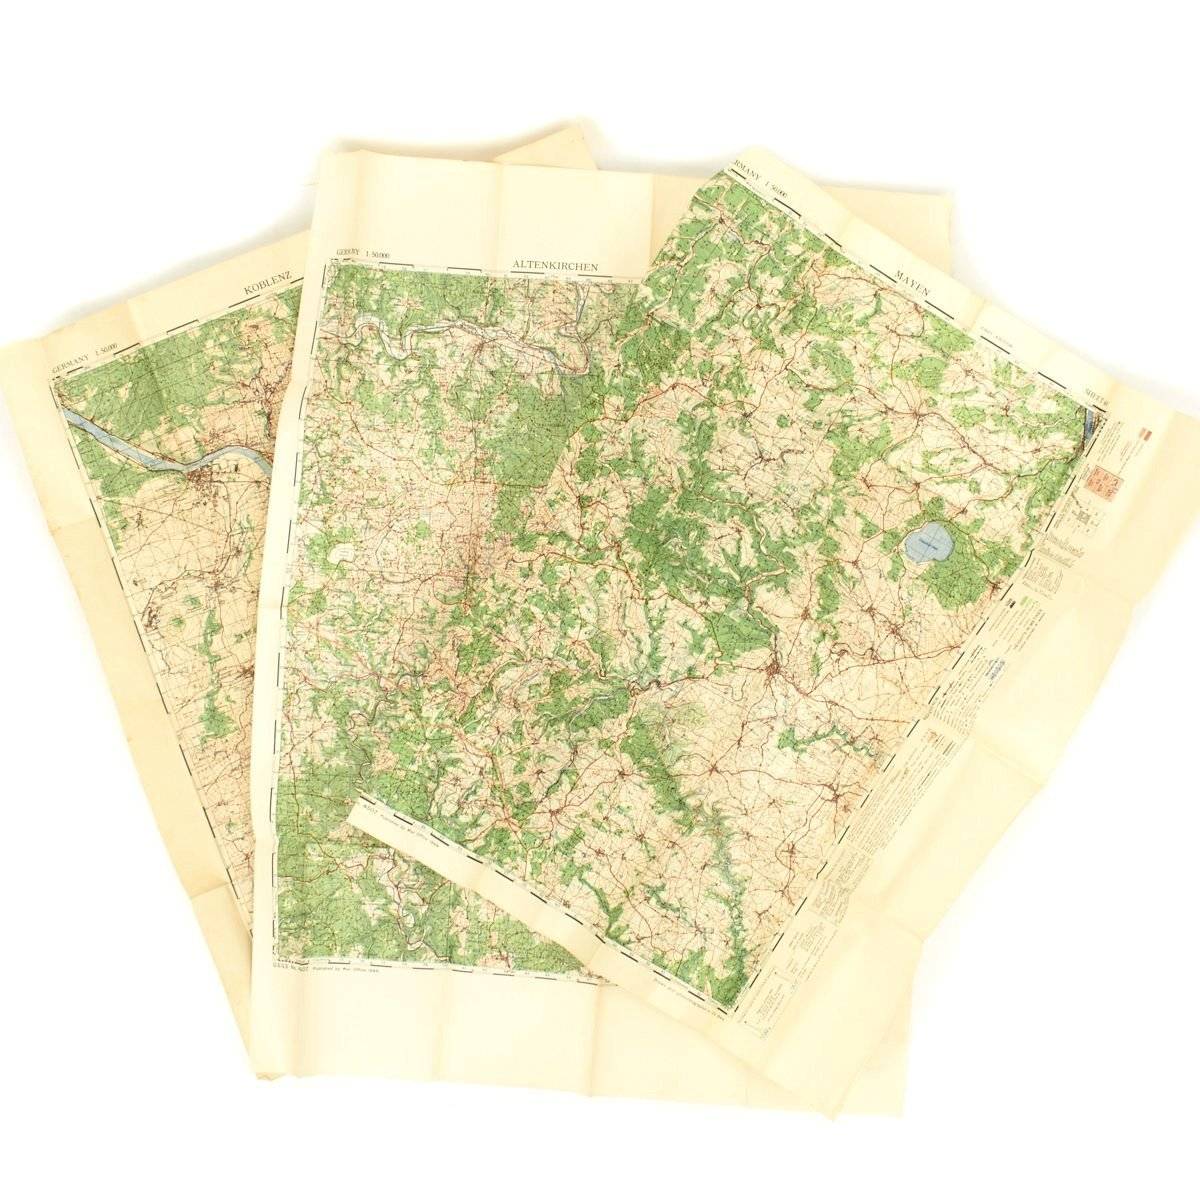 Map Of Germany To Color.Original British Wwii 1944 Color Maps Of Germany Koblenz Mayen